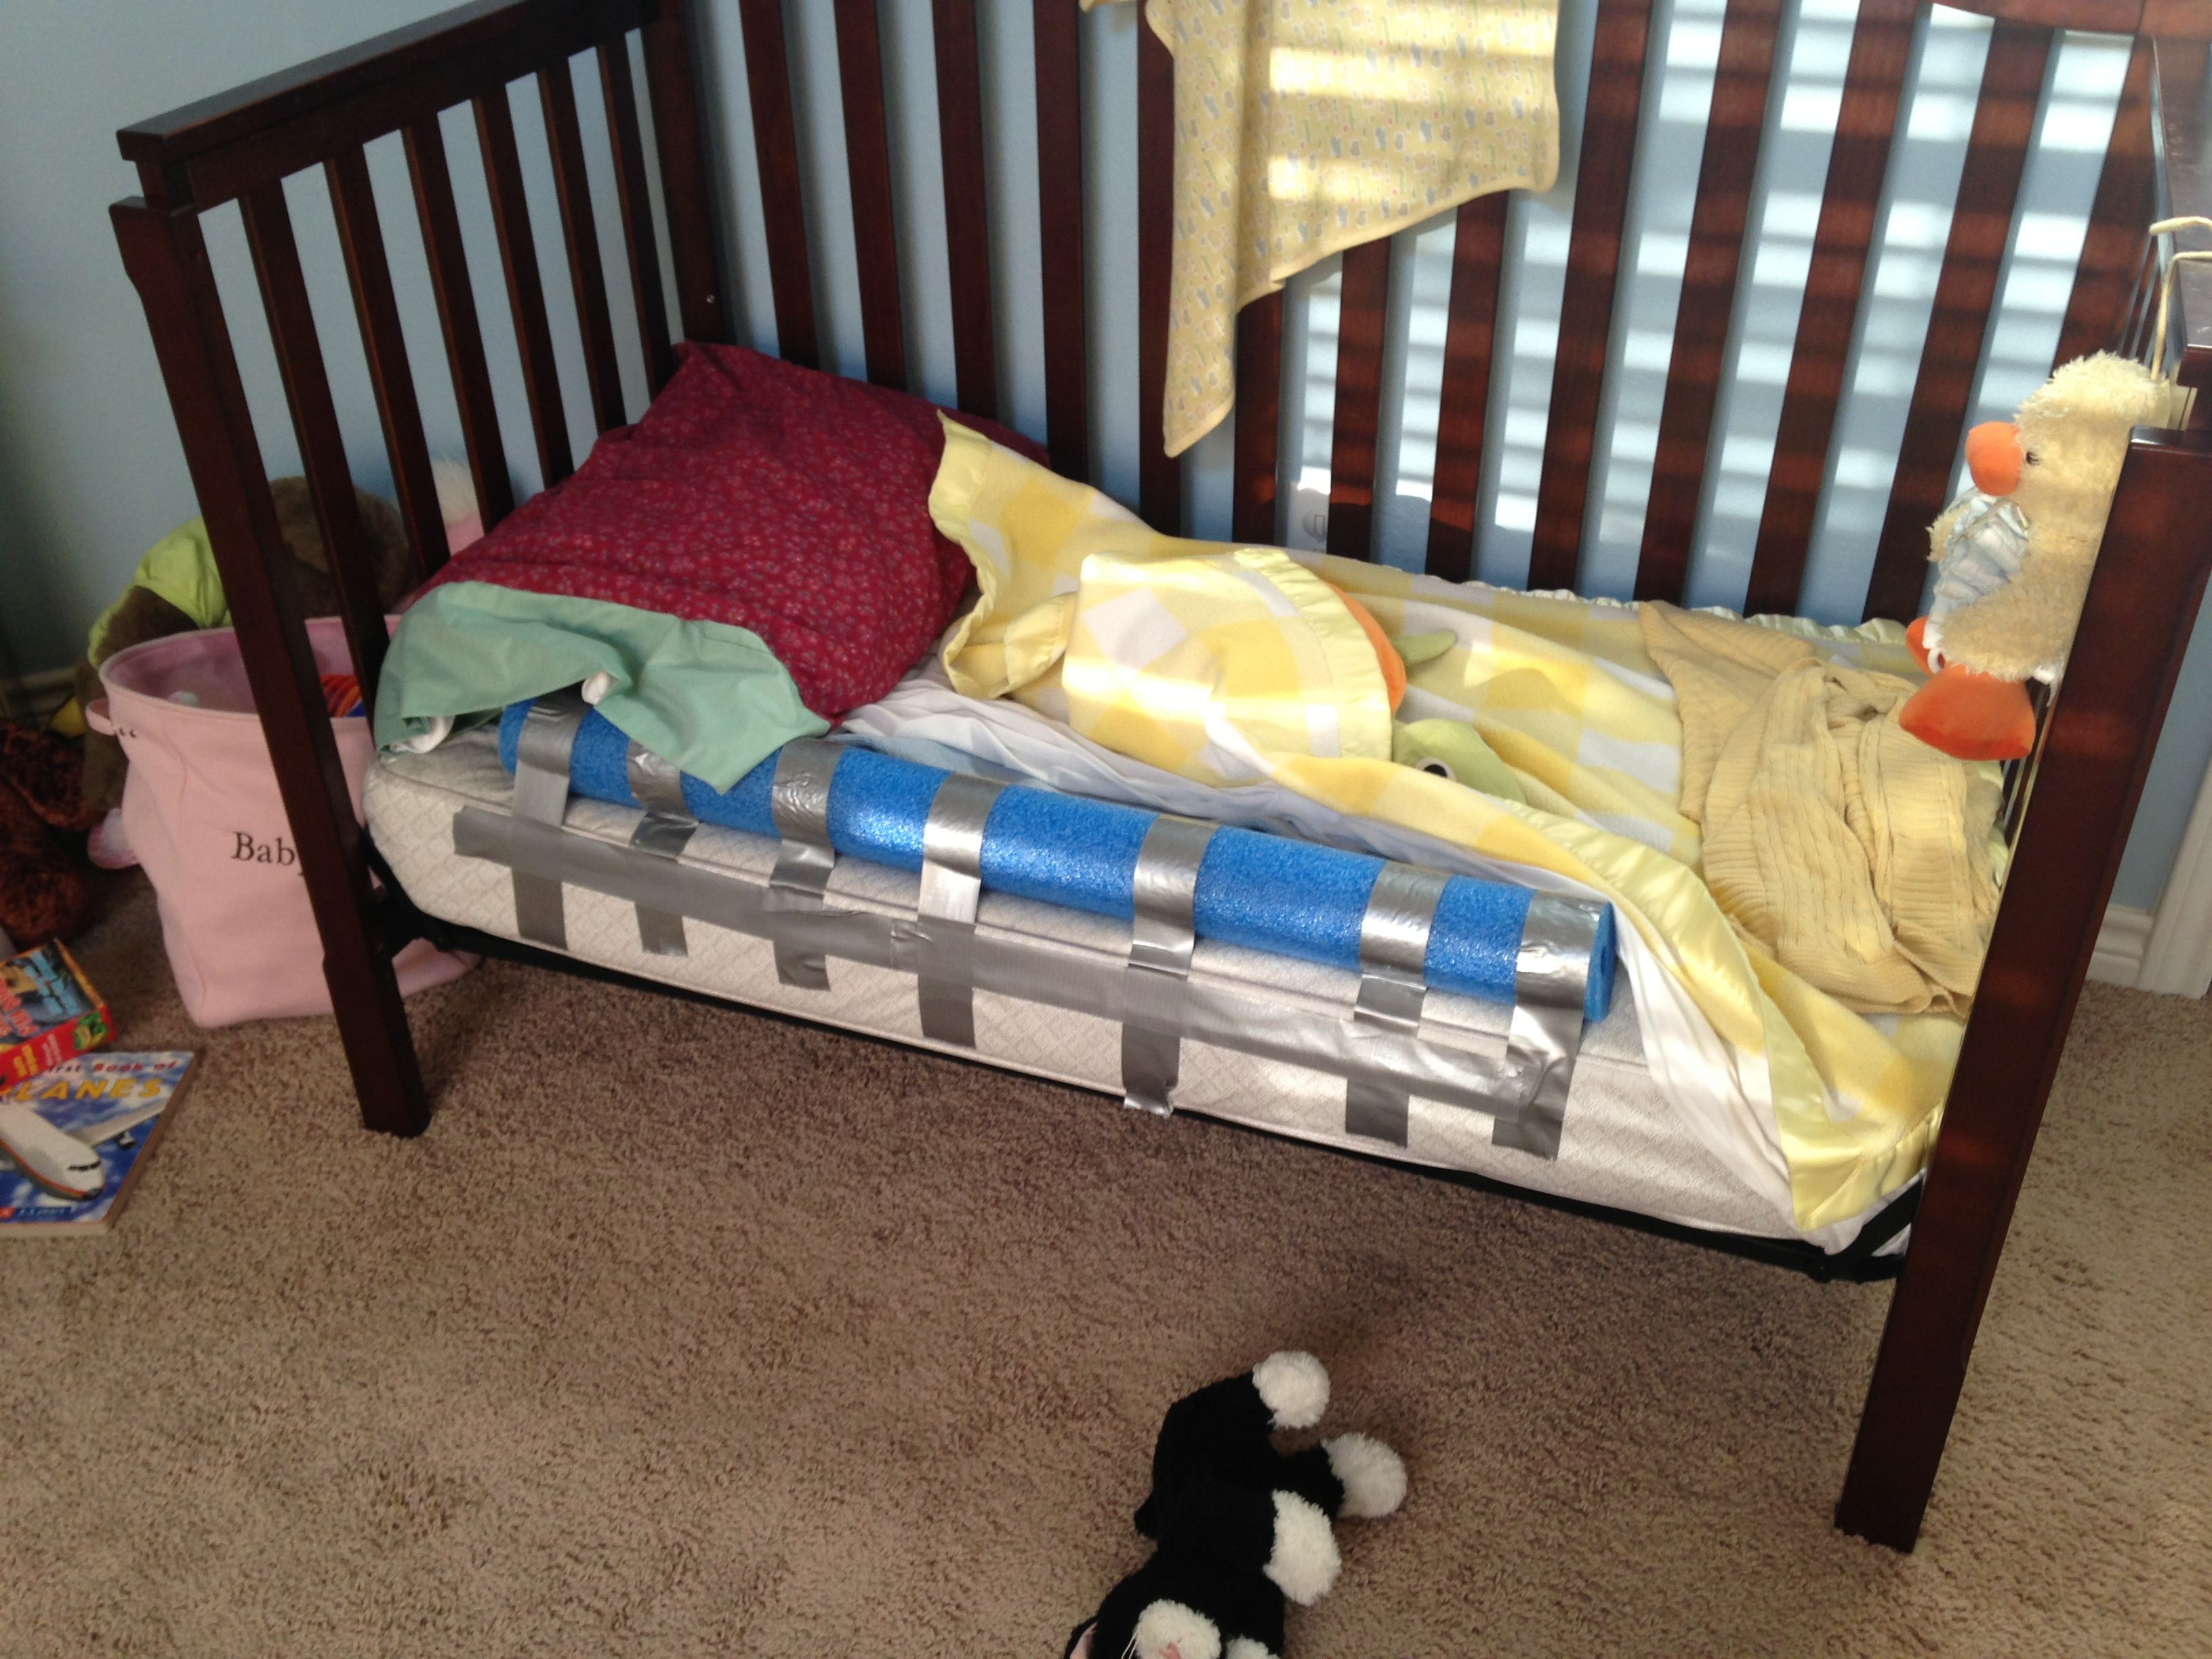 Pool Noodle Safety Bumper Just Pull Fitted Sheet Over The